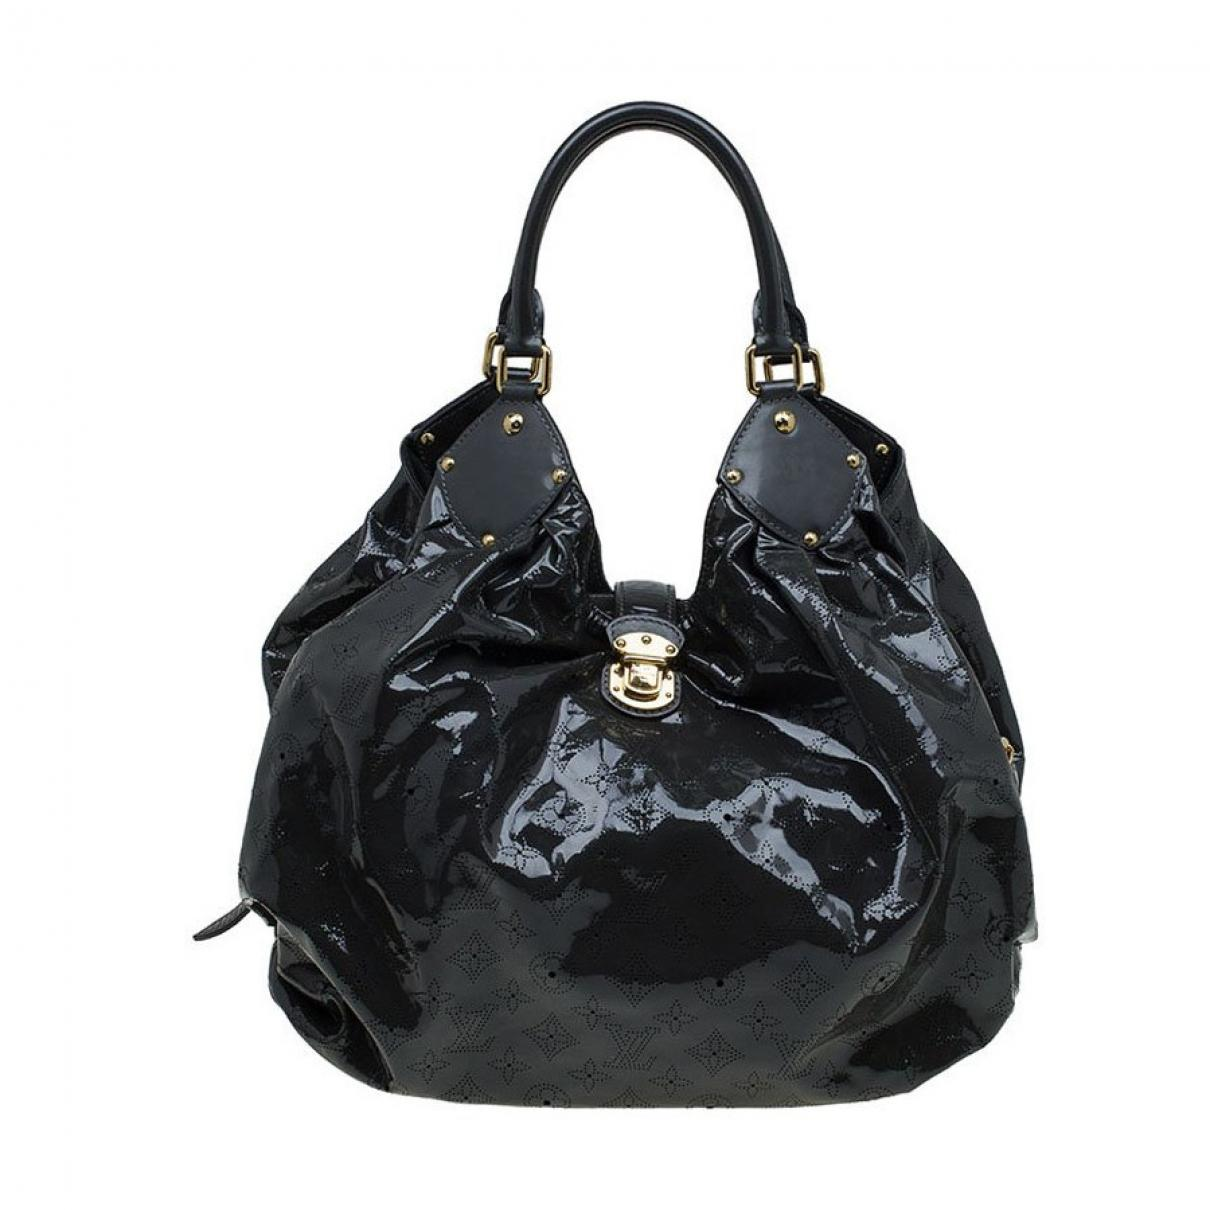 58dbfd863061 Lyst - Louis Vuitton Pre-owned Mahina Patent Leather Bag in Gray